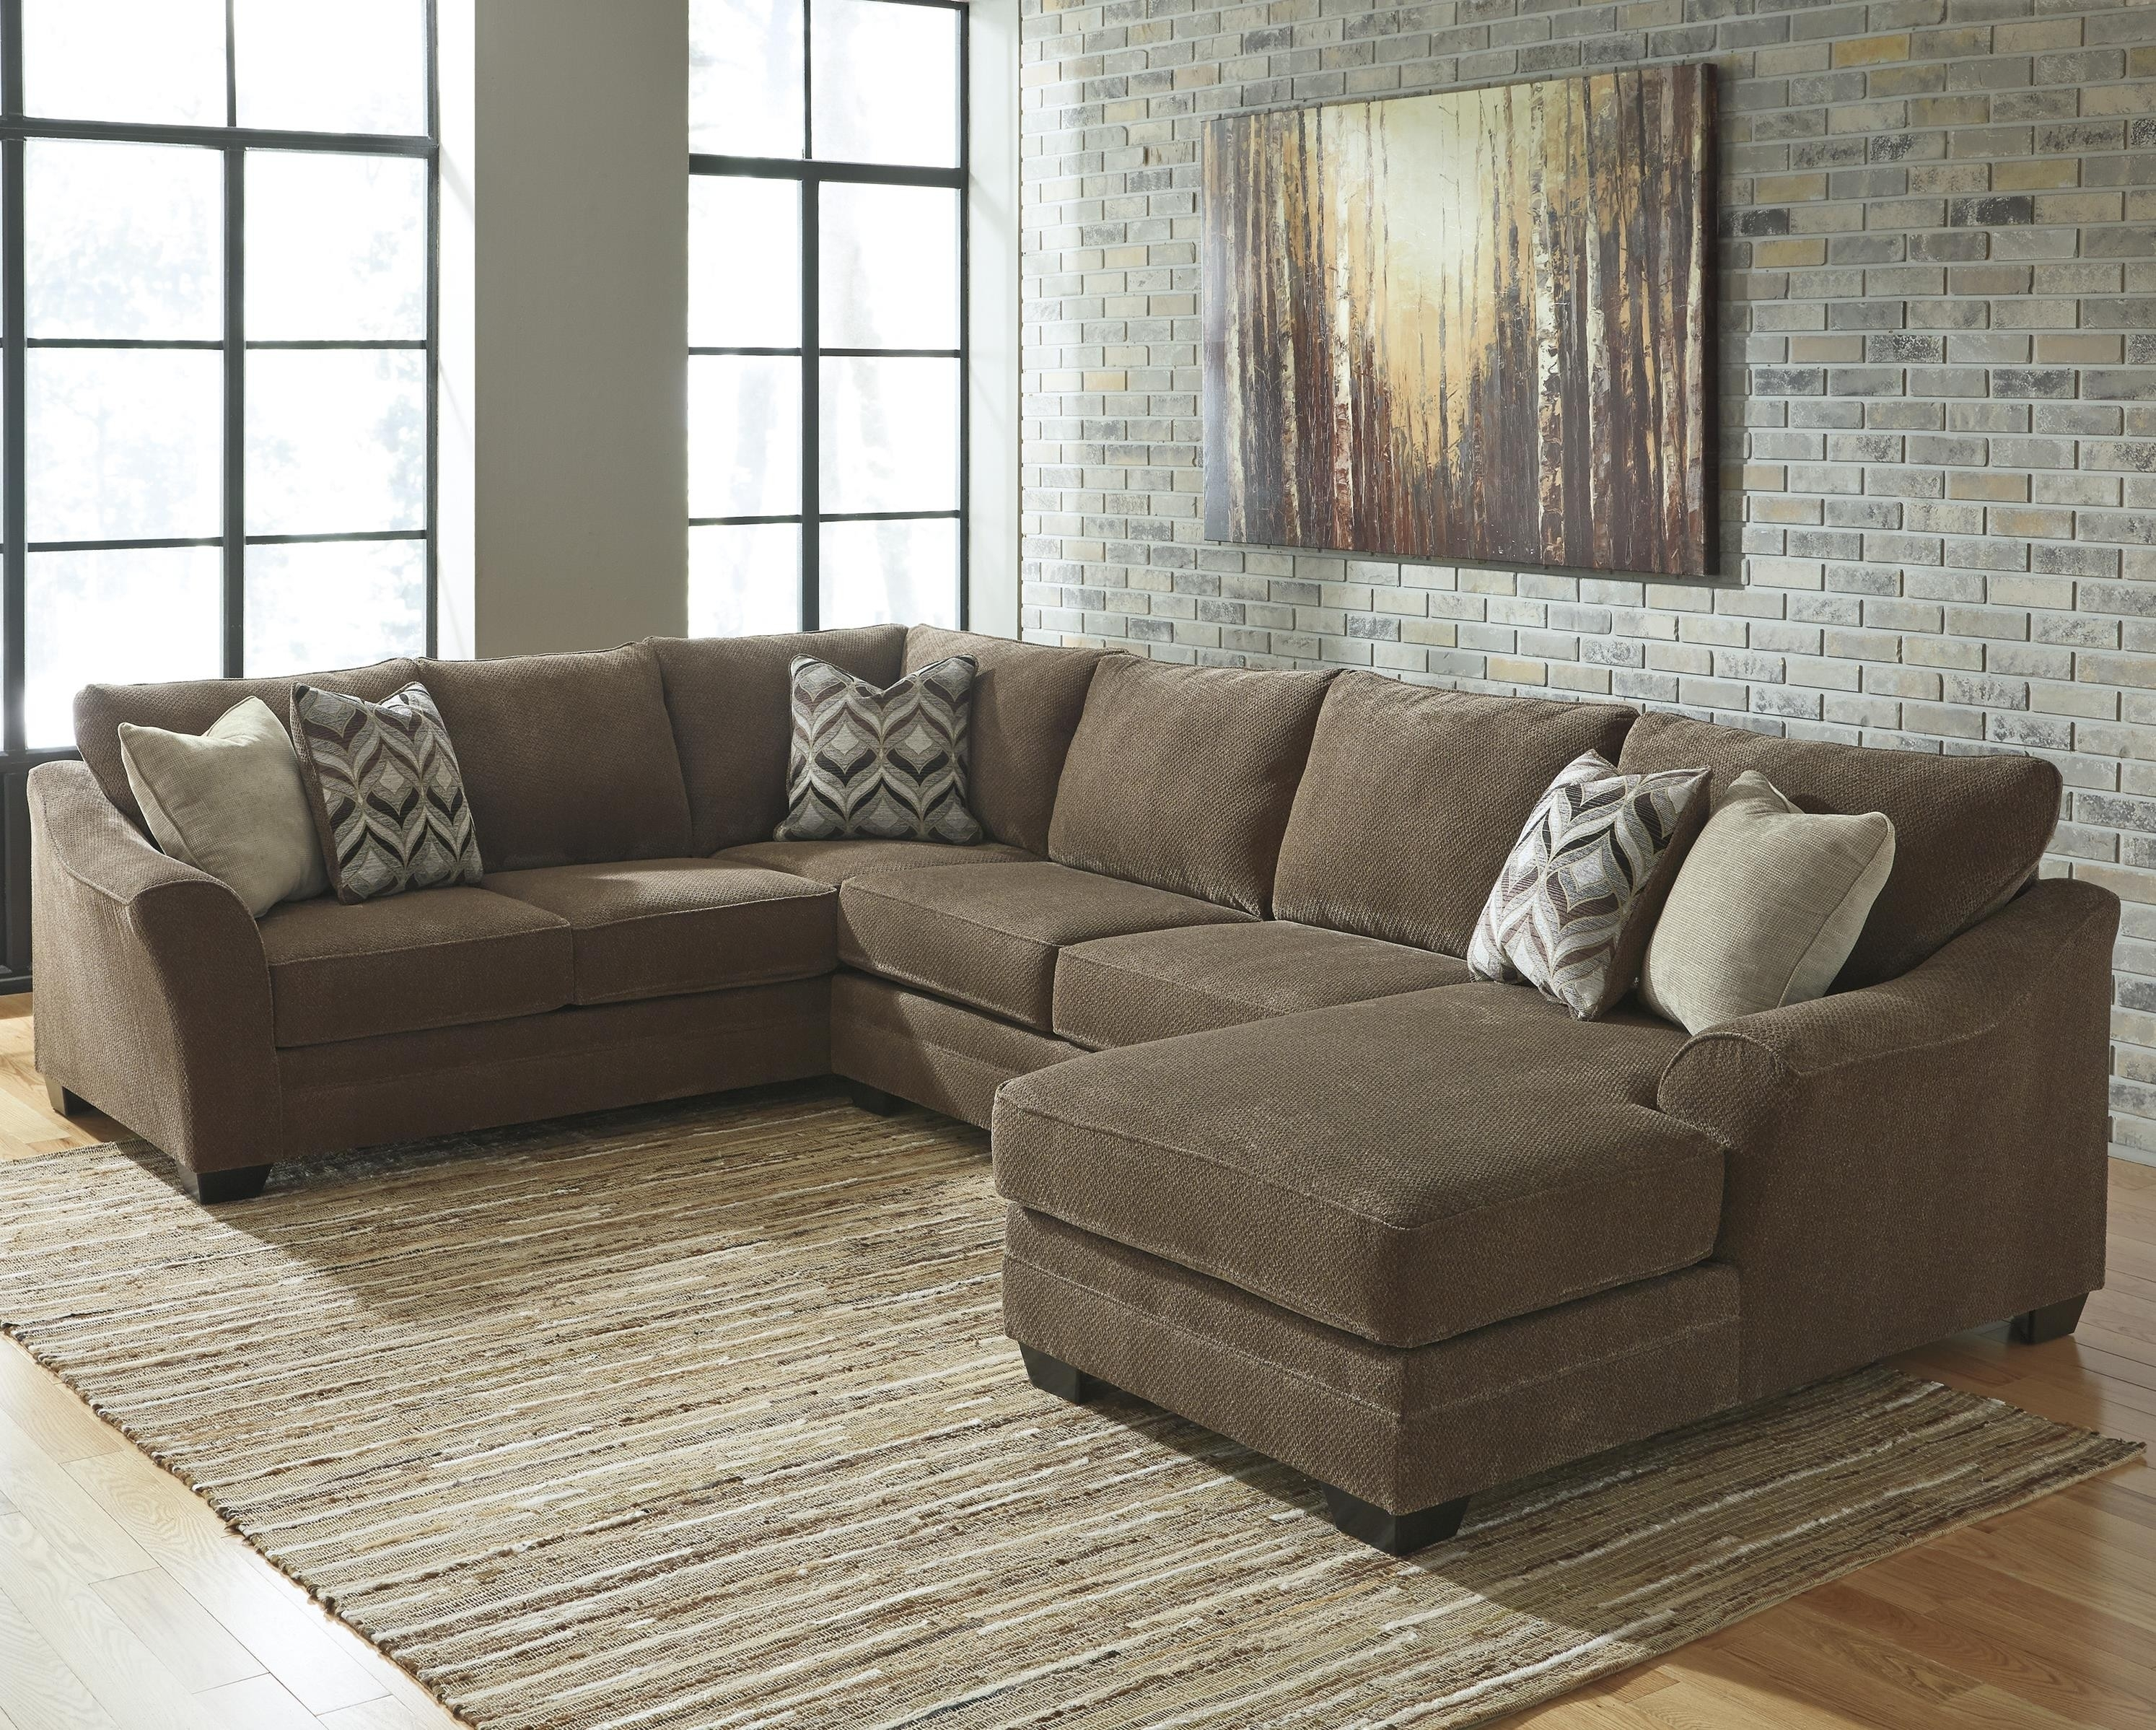 3 Piece Sectional Malbry Point W Laf Chaise Living Spaces 223533 0 Throughout Malbry Point 3 Piece Sectionals With Raf Chaise (Photo 8 of 30)